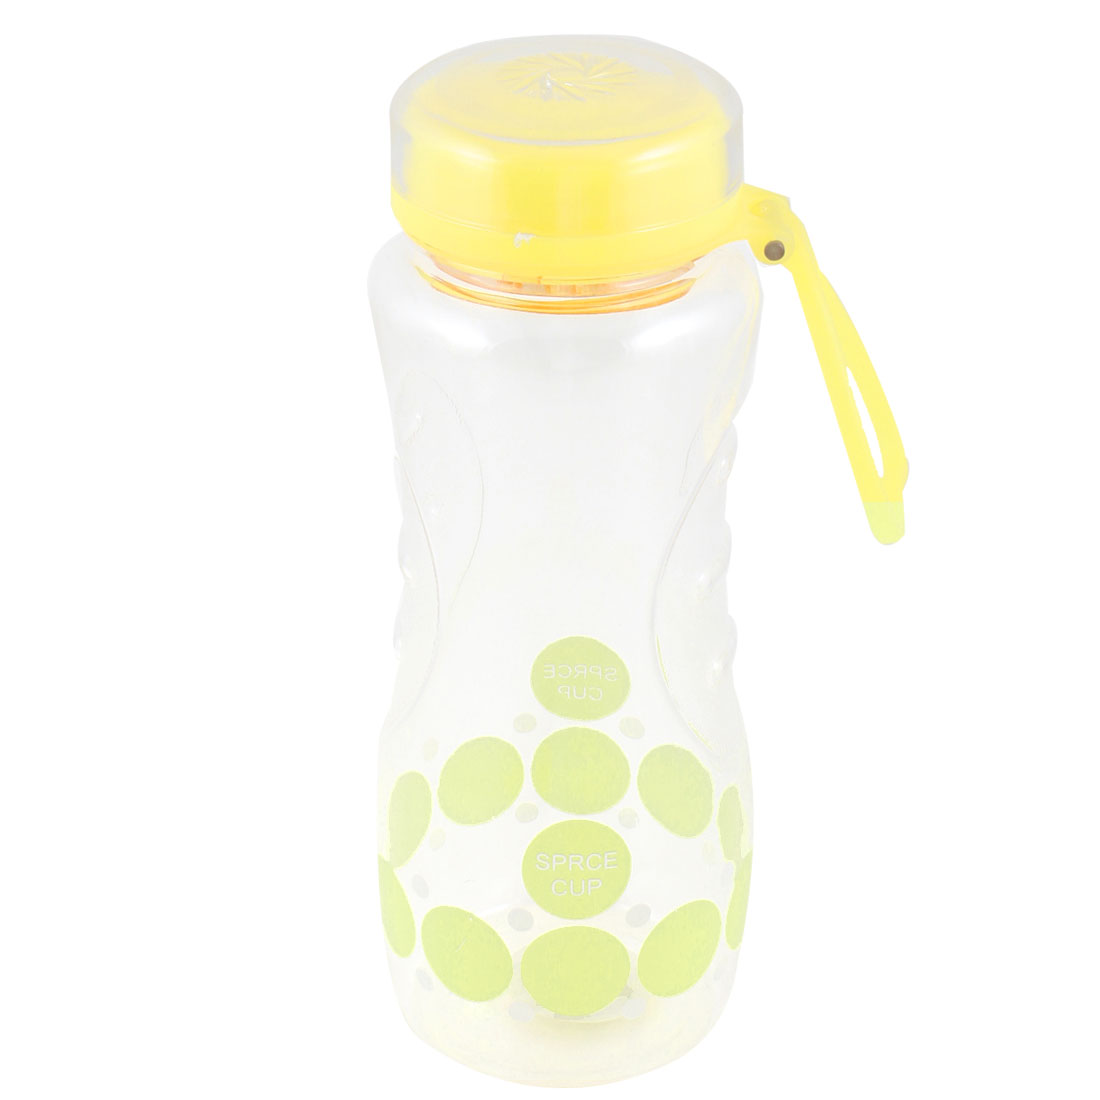 700ML Capacity Plastic Tea Strainer Yellow Clear Sports Water Bottle